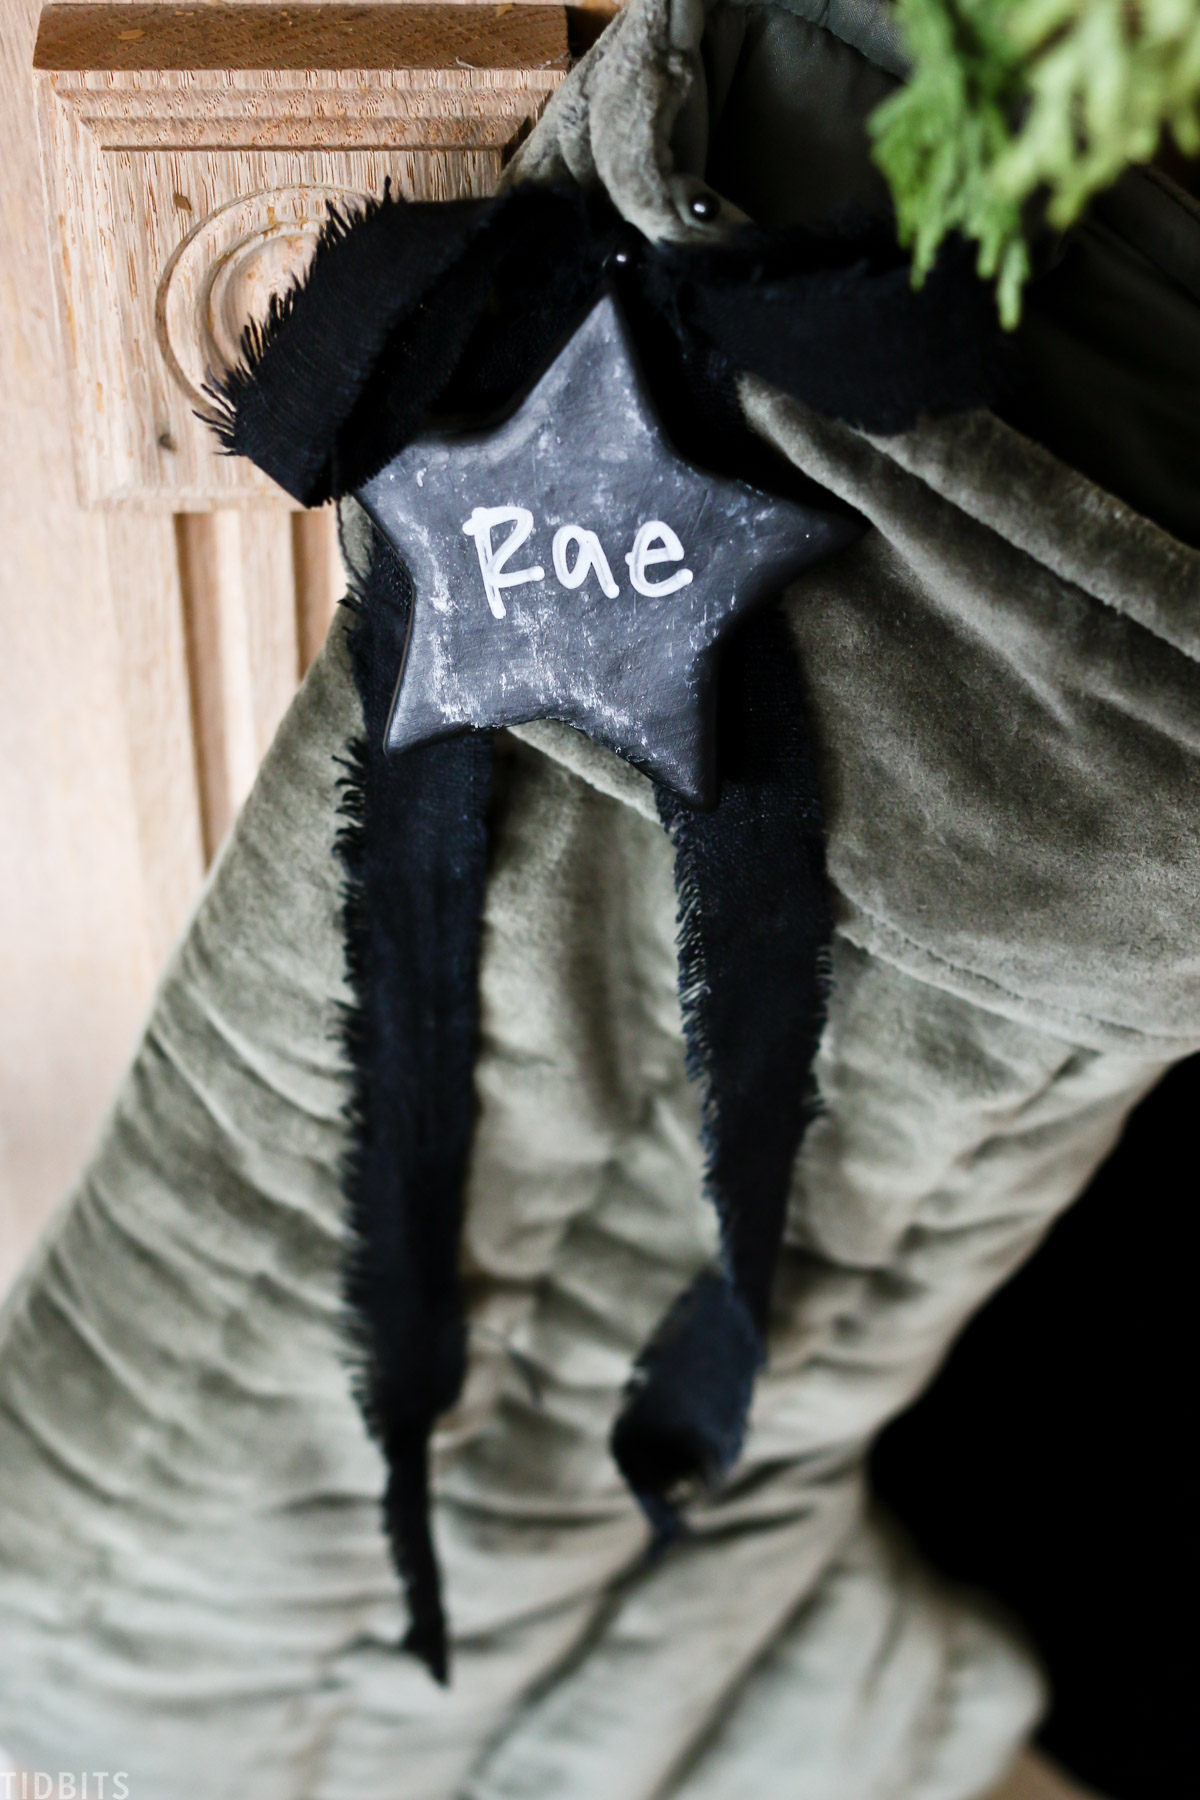 ceramic star with the name Rae written on it that's hanging off green stocking